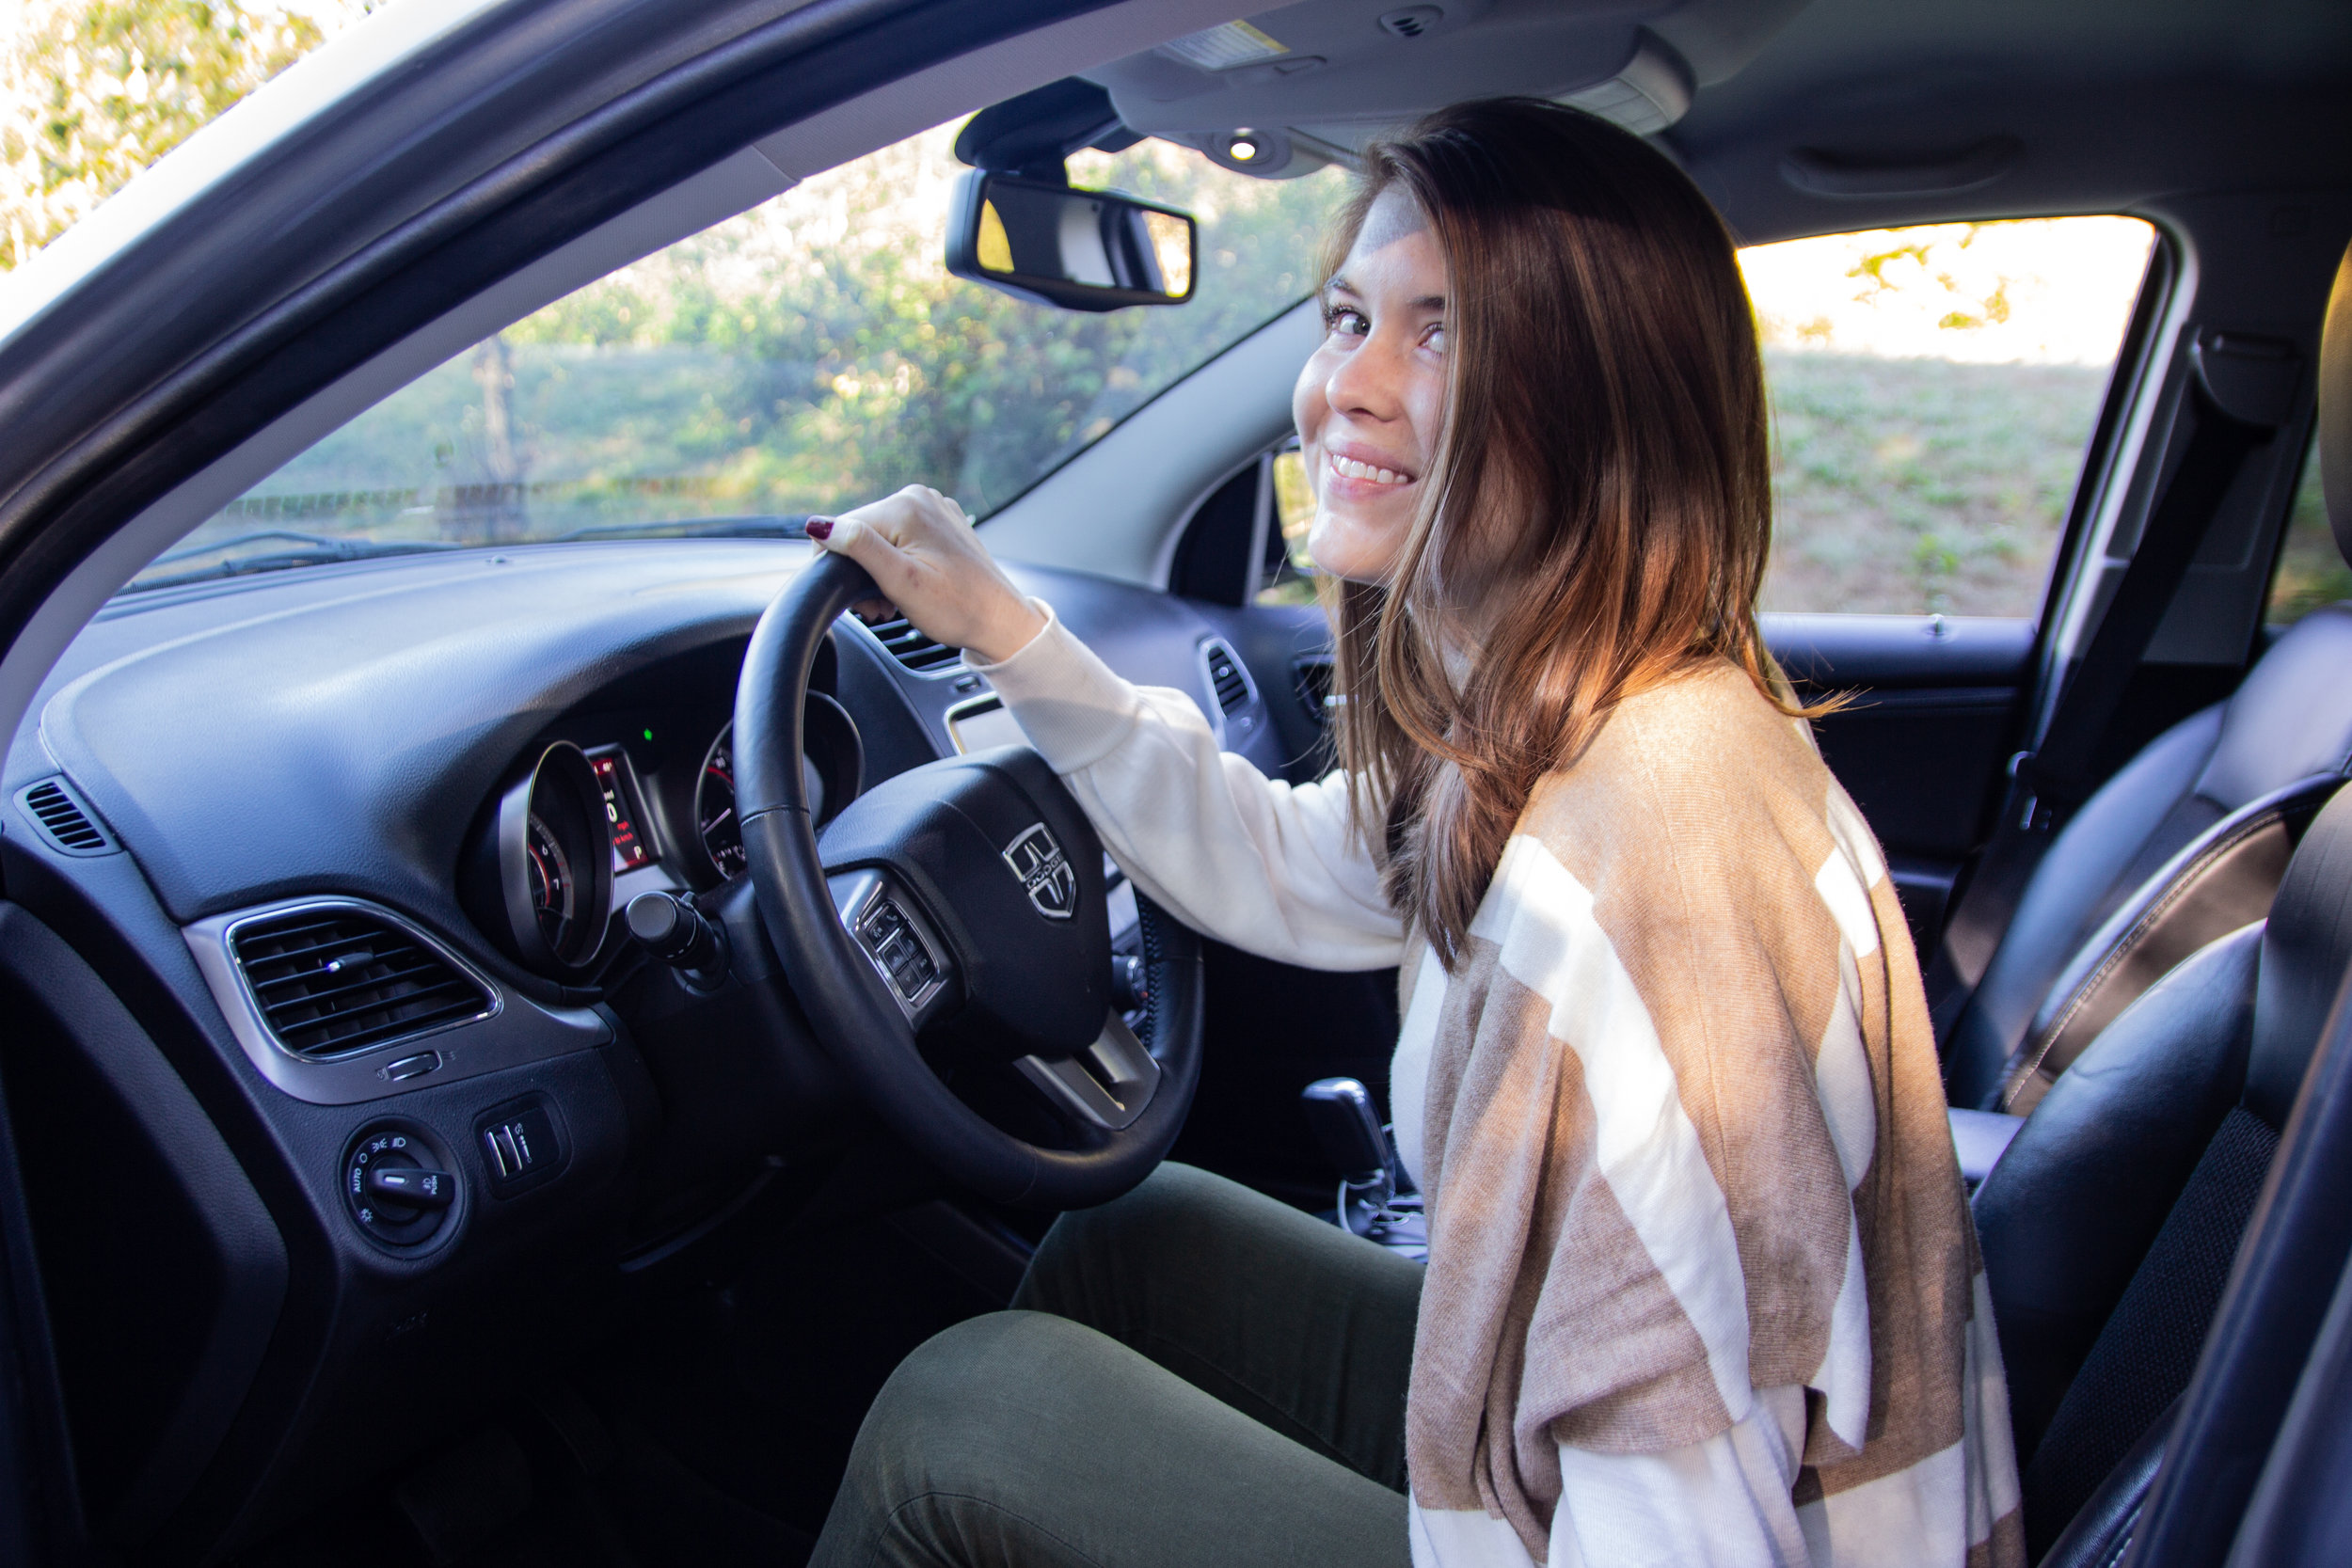 rattlesnake ridge, rattlesnake ledge trail, turo, skip the rental counter, rent a car, air bnb for cars, dodge journey, loft girl, olive madewell jeans, how to rent a car with turo, turo reviews